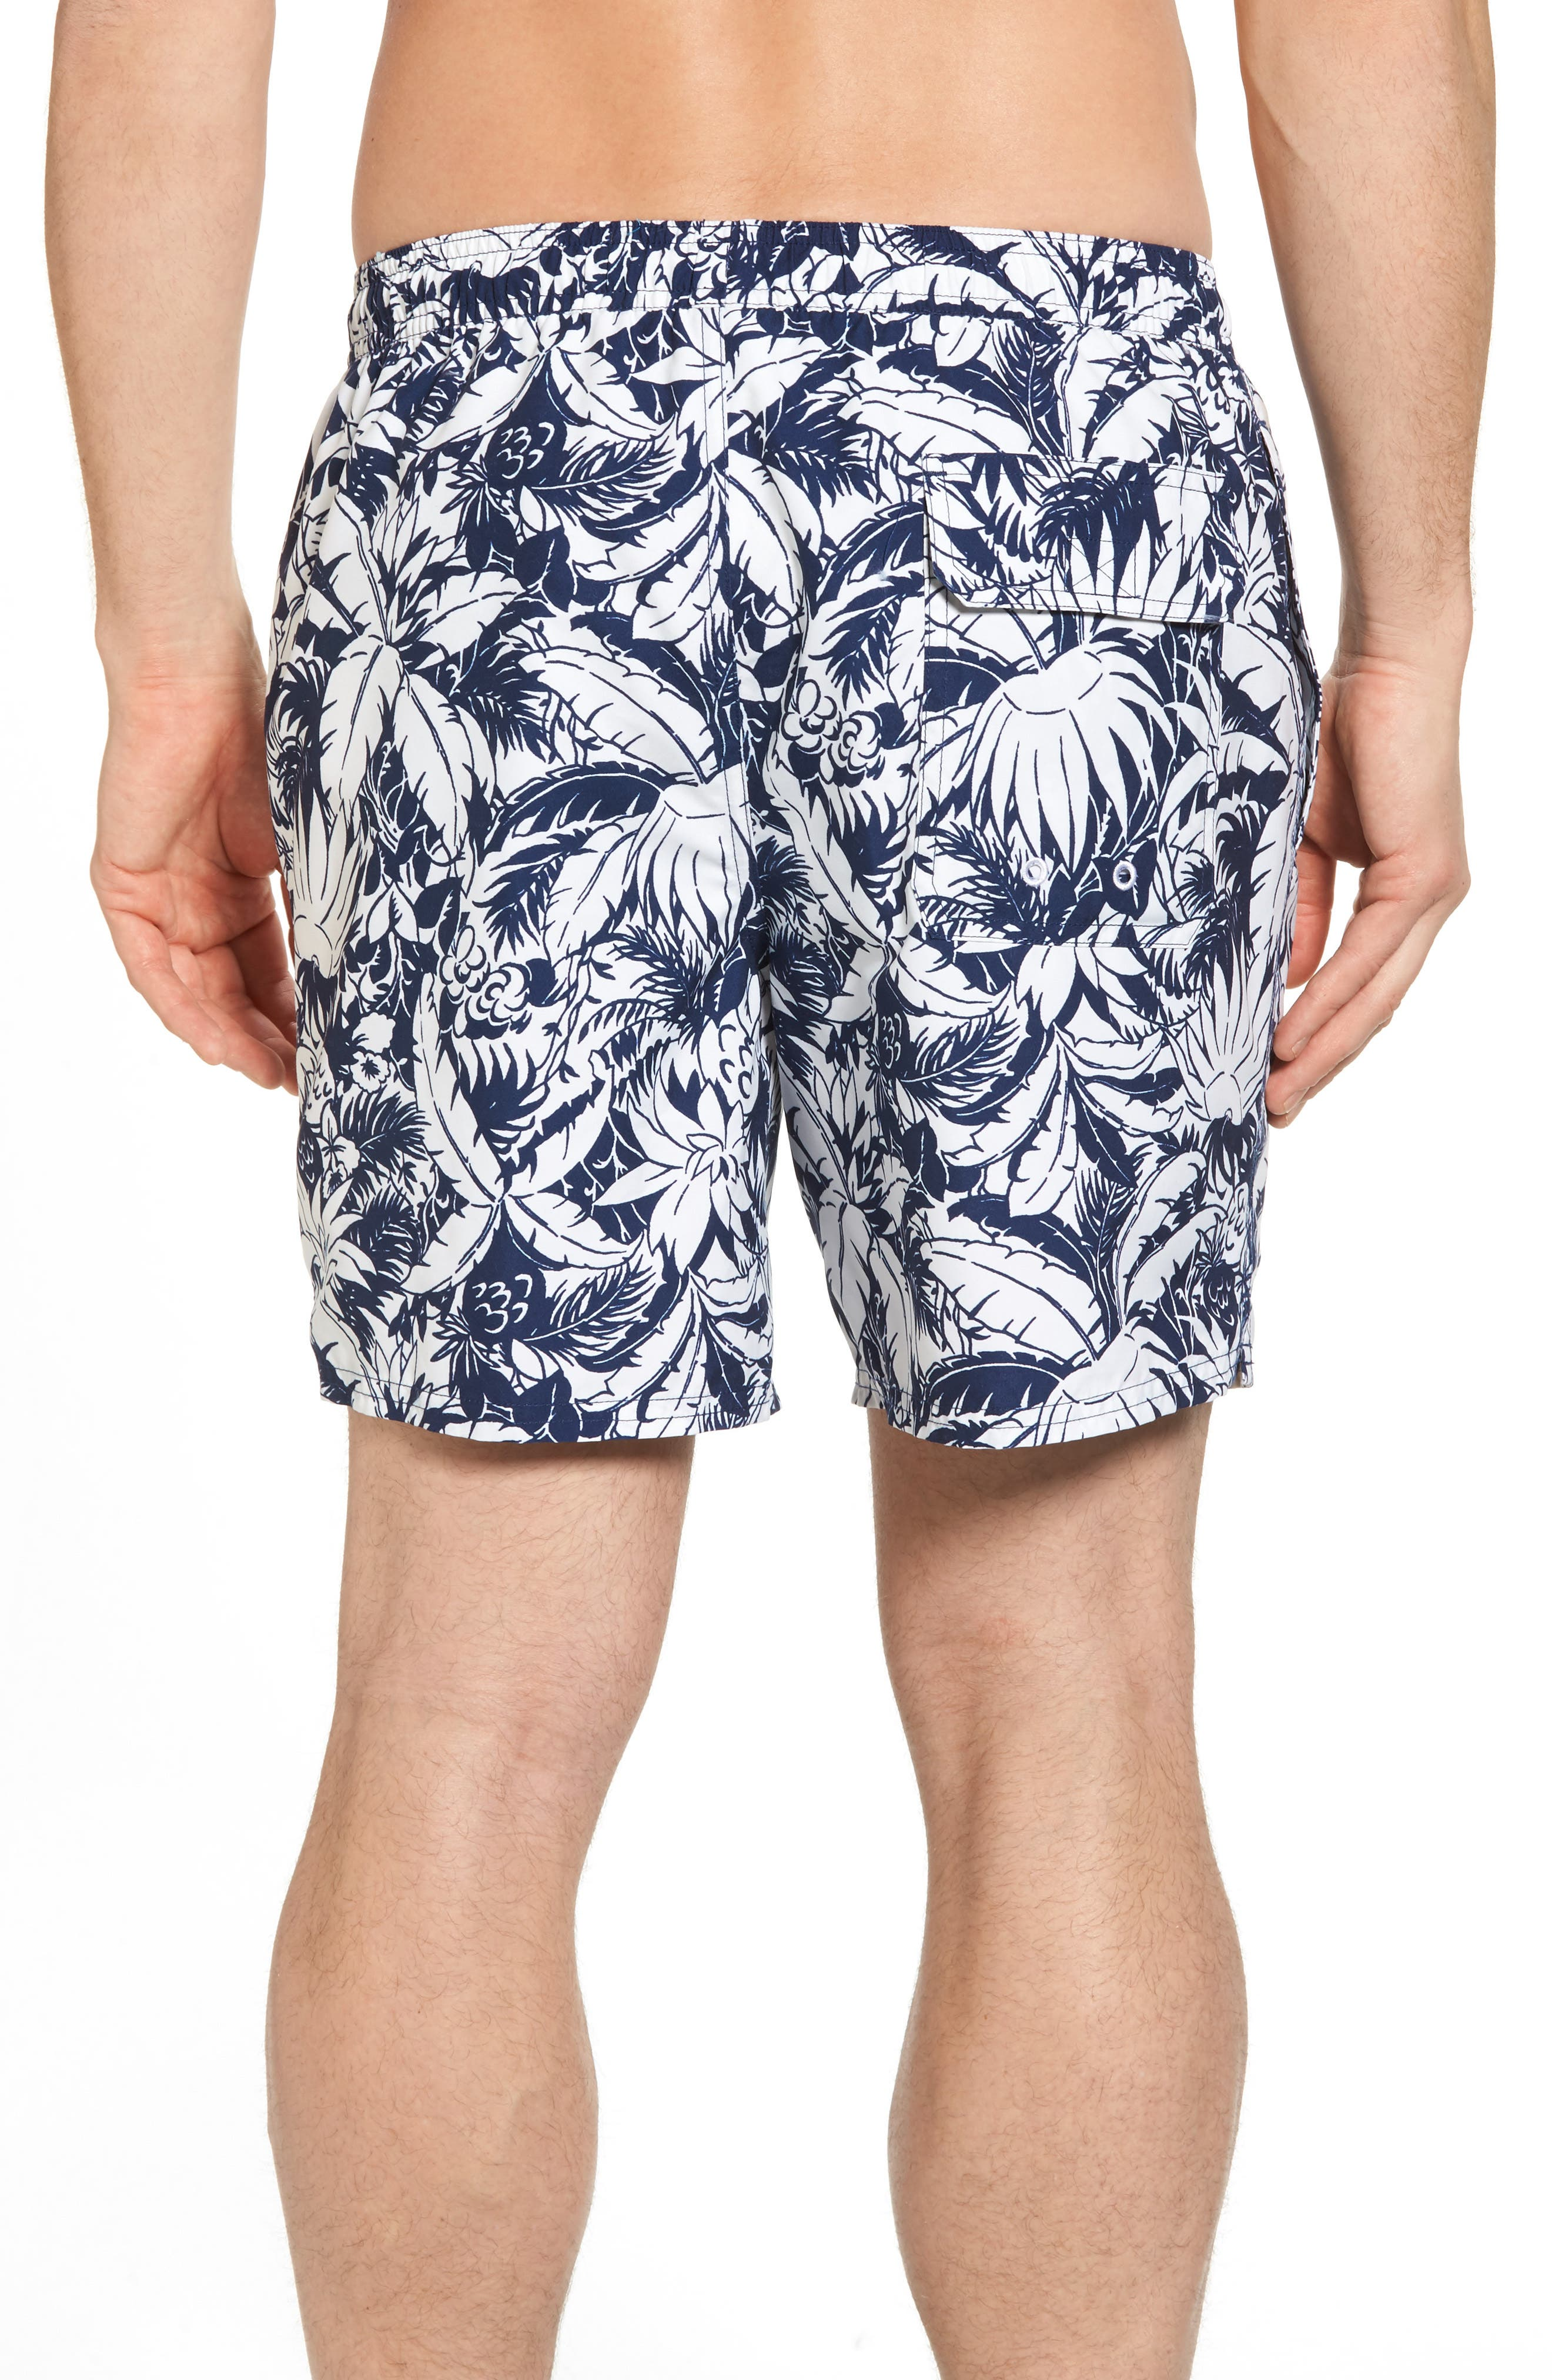 Chappy Pineapple in Palms Swim Trunks,                             Alternate thumbnail 2, color,                             400